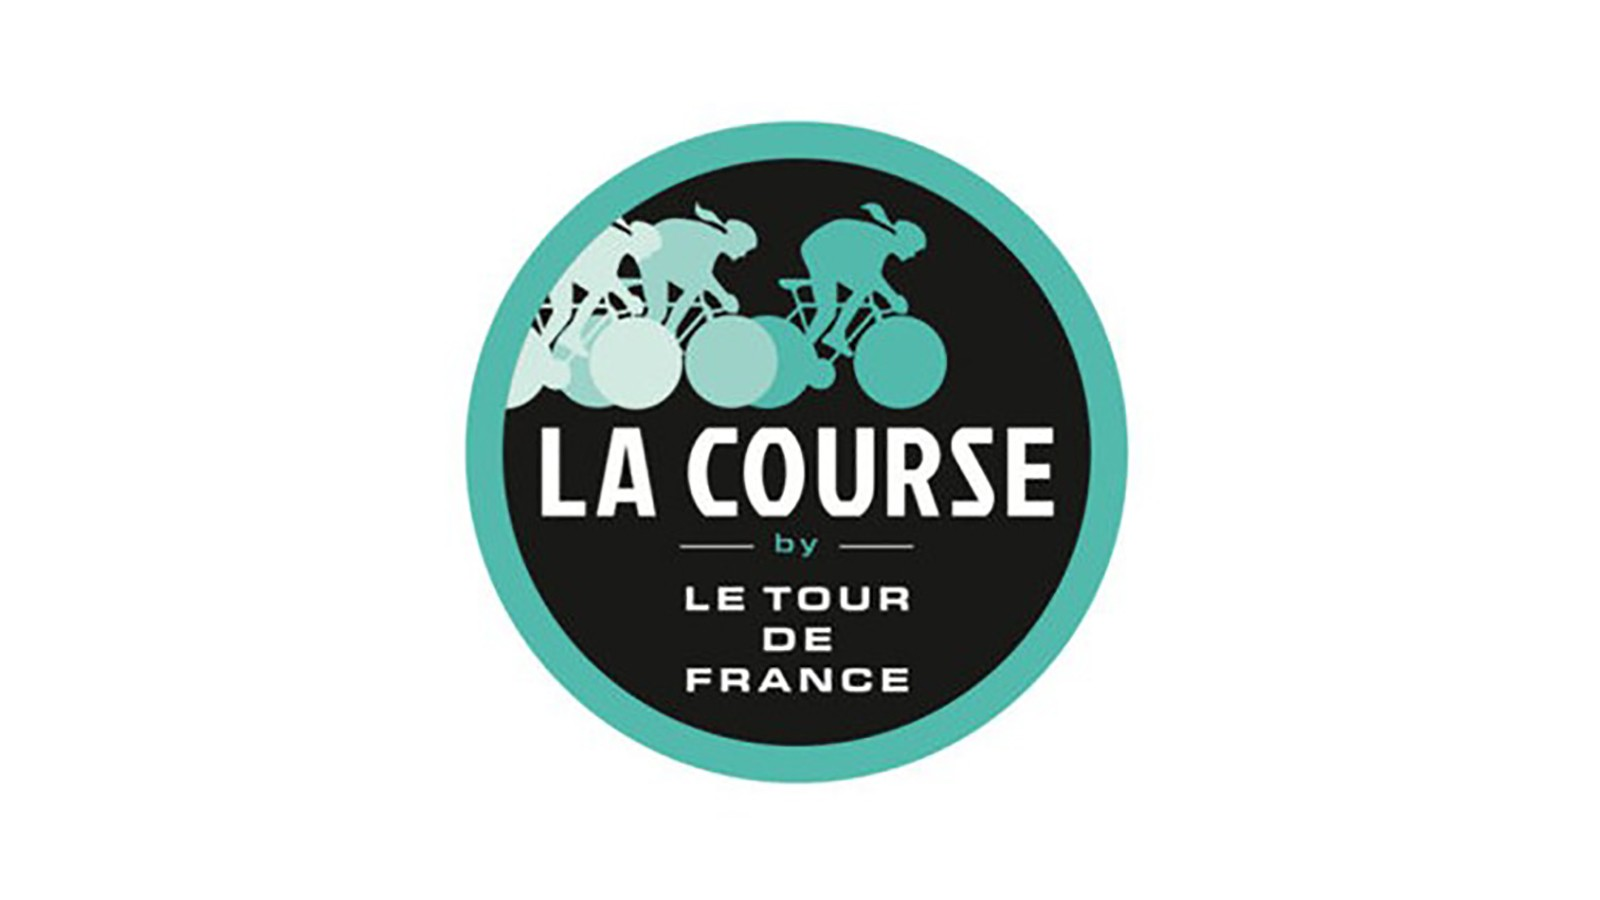 La Course by Le Tour de France will be here on 17 July